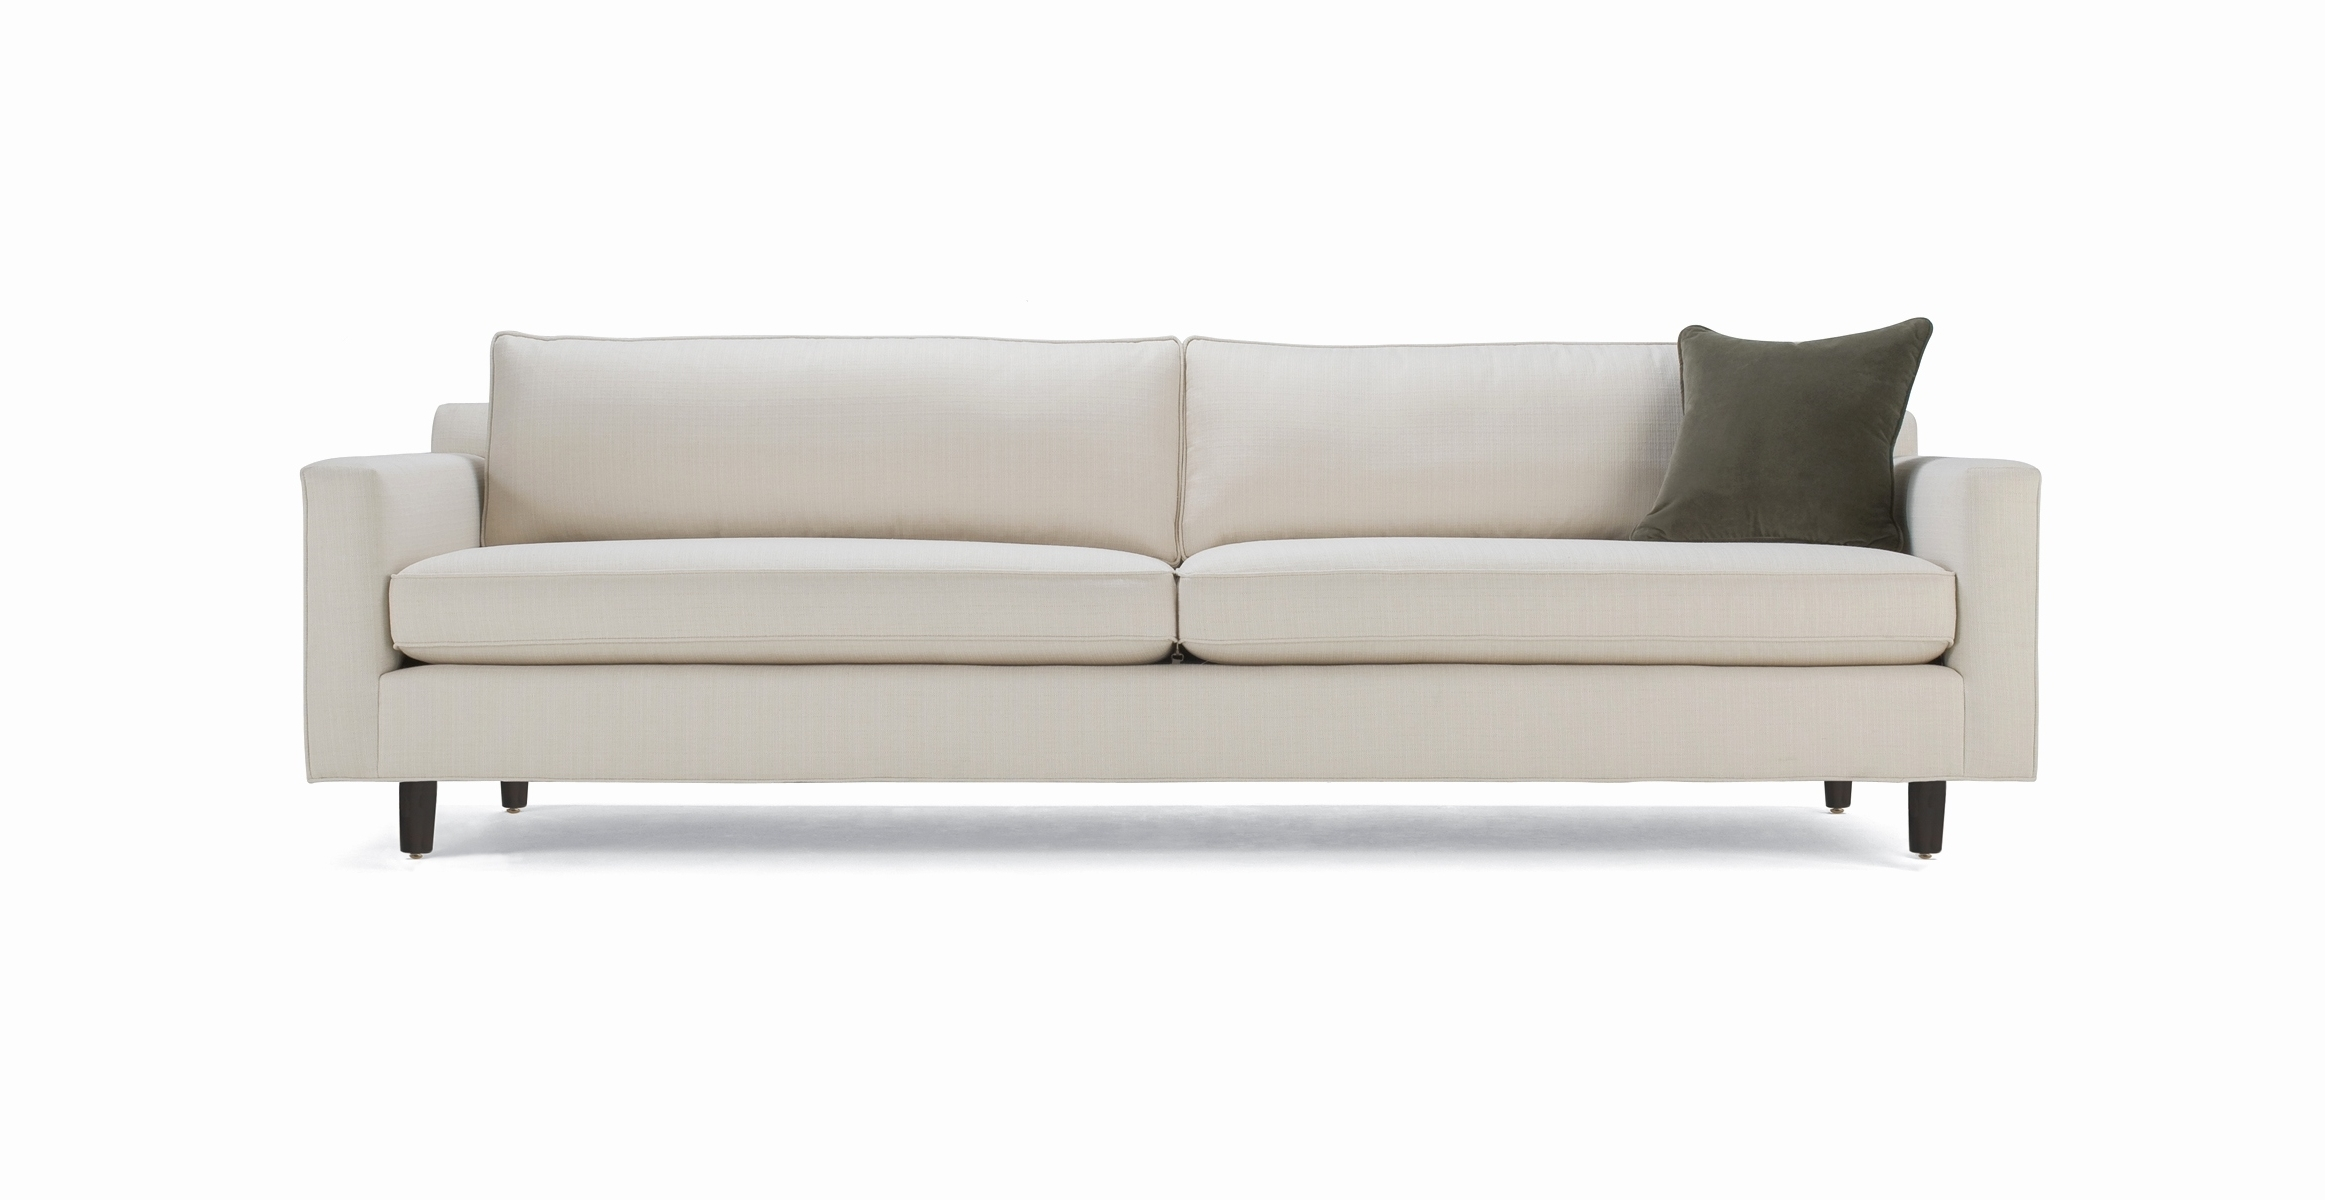 Well Liked Mitchell Gold Sofas With Regard To New Mitchell Gold Sofa 2018 – Couches Ideas (View 12 of 15)